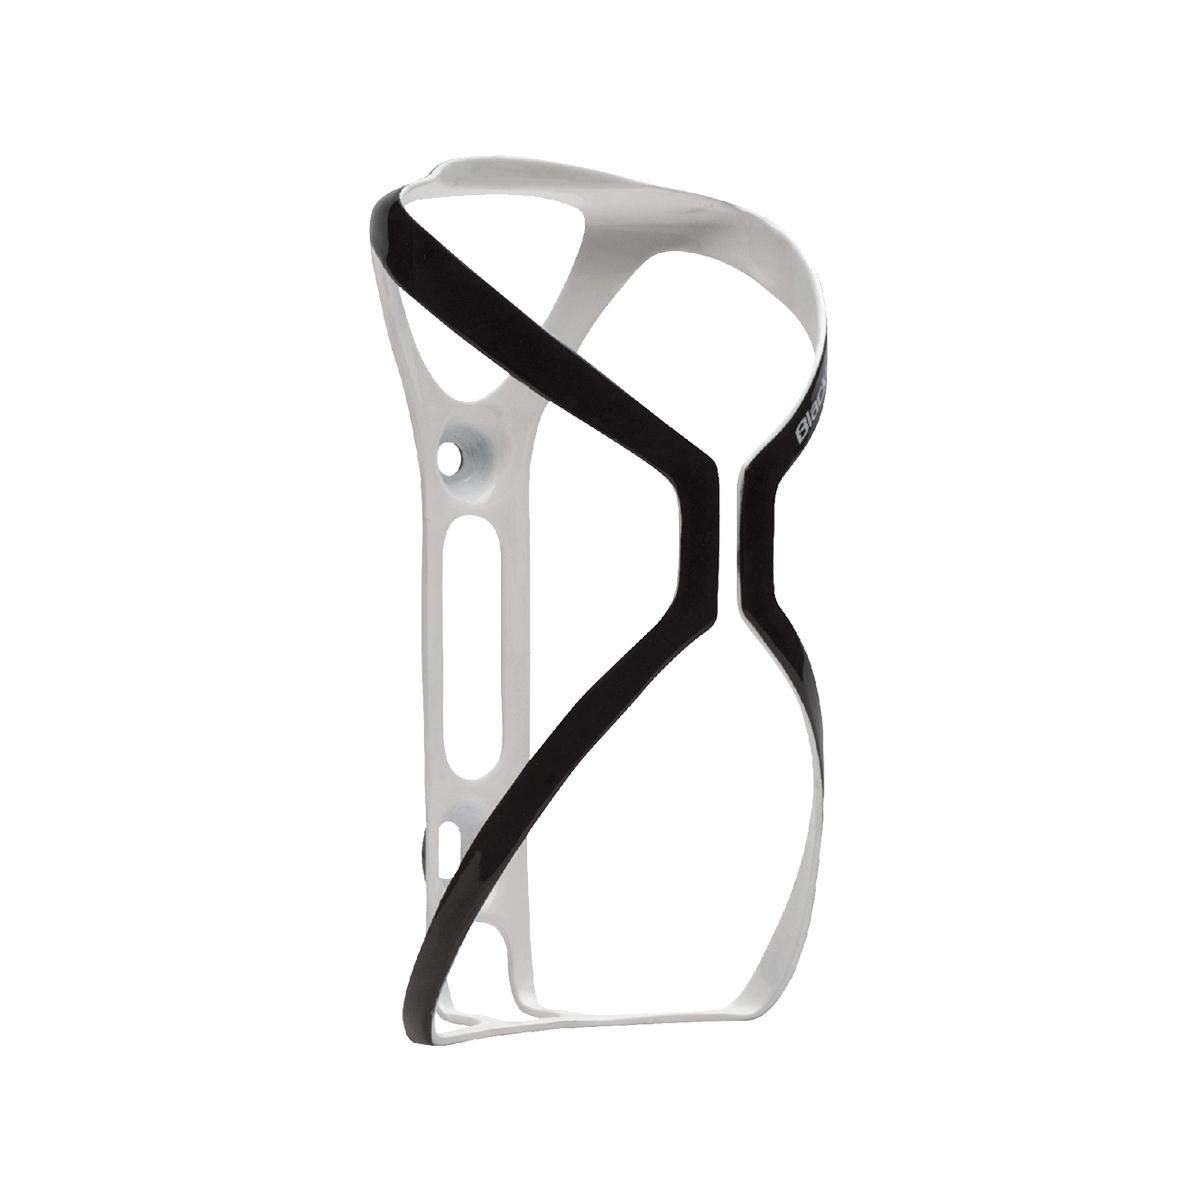 Blackburn Cinch Carbon Fiber Bottle Cage - Gloss White by Blackburn